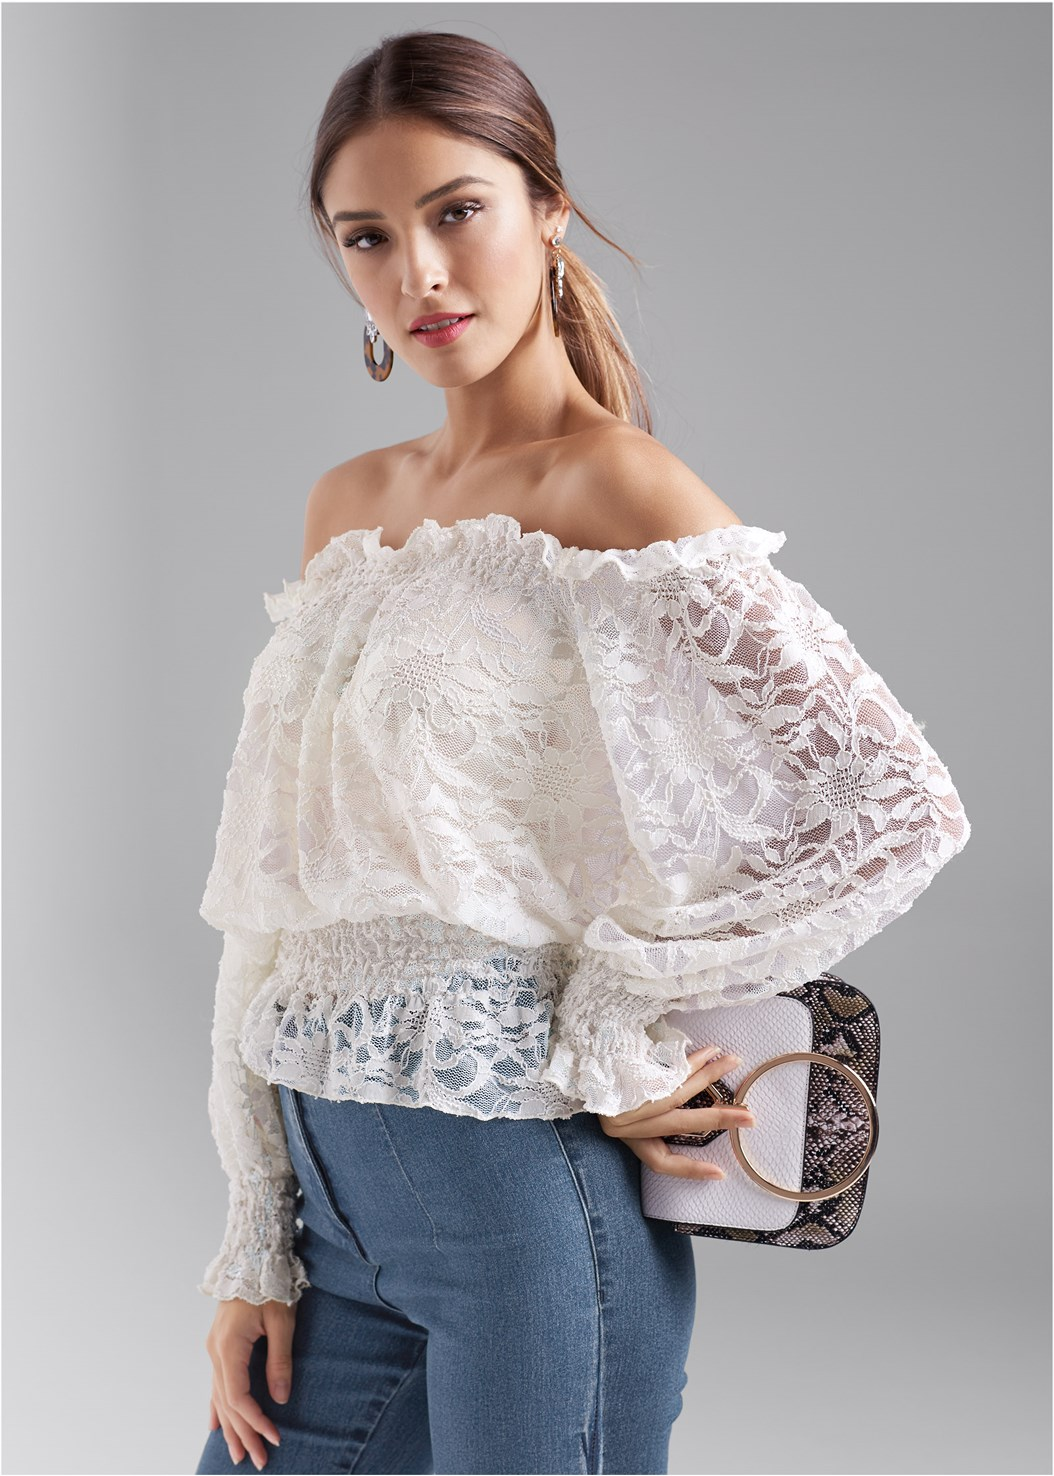 Off The Shoulder Lace Top,Embellished Rip Jeans,Lucite Detail Print Heels,High Heel Strappy Sandals,Embellished Resin Earrings,Print Detail Handbag,Bead Detail Crochet Bag